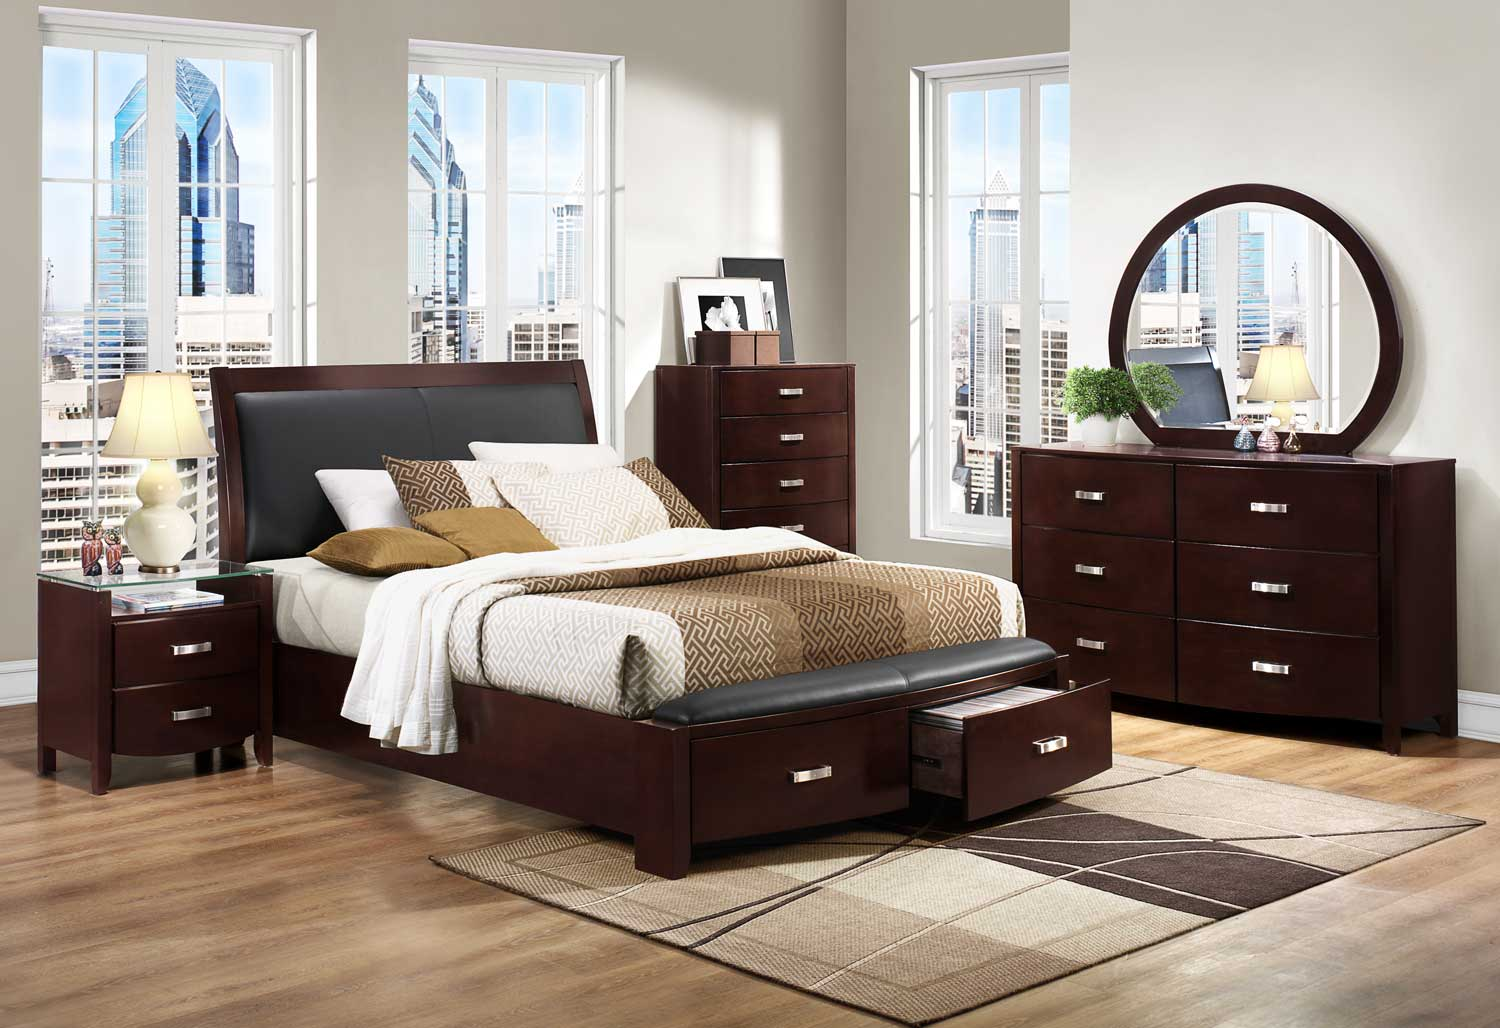 Homelegance lyric platform bedroom set dark espresso for Bed set queen furniture